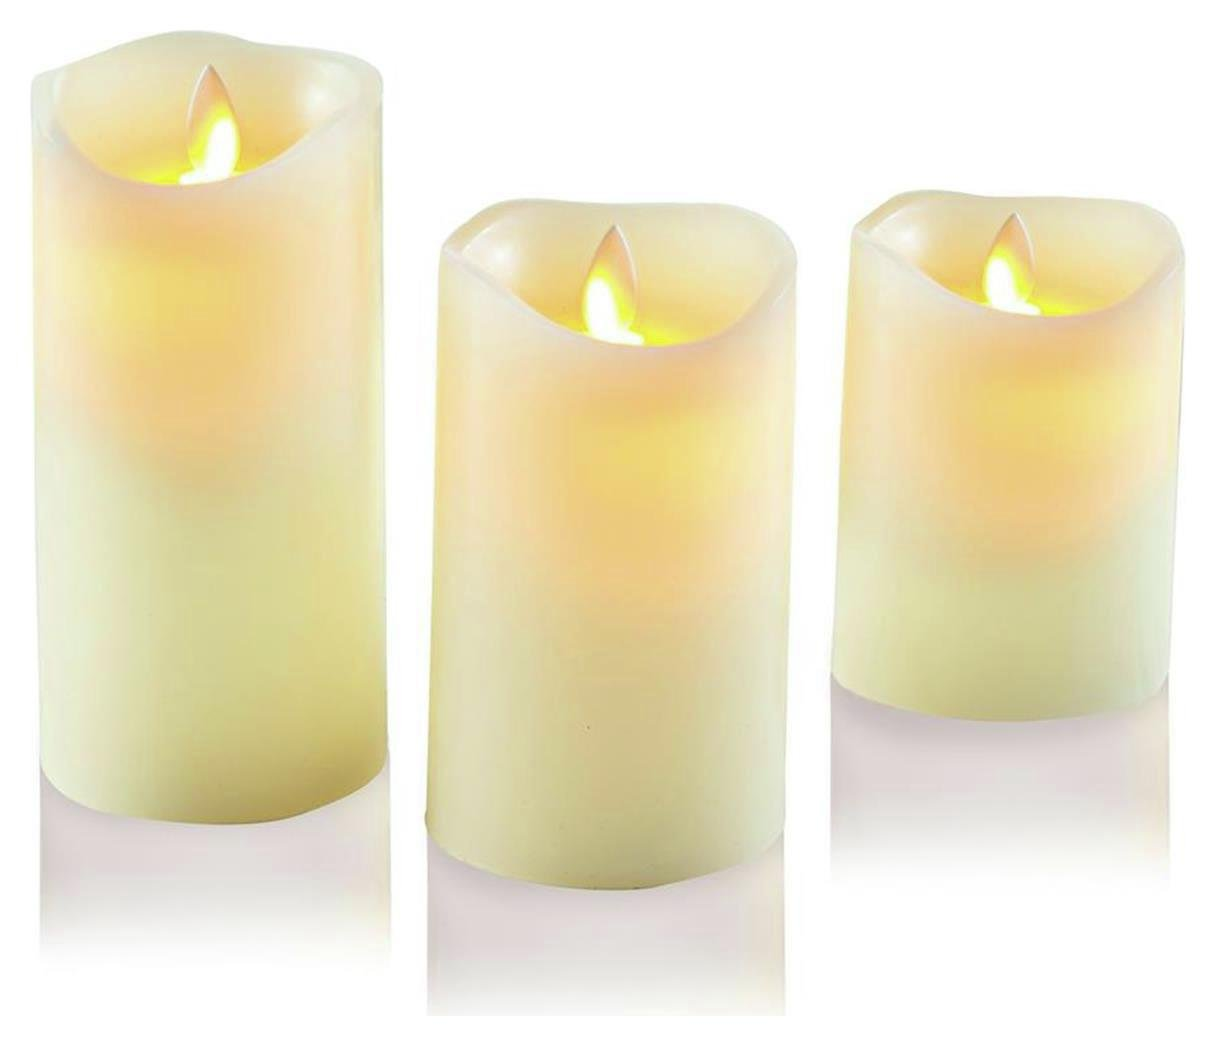 Set of 3 Dancing Flame Candles - Cream